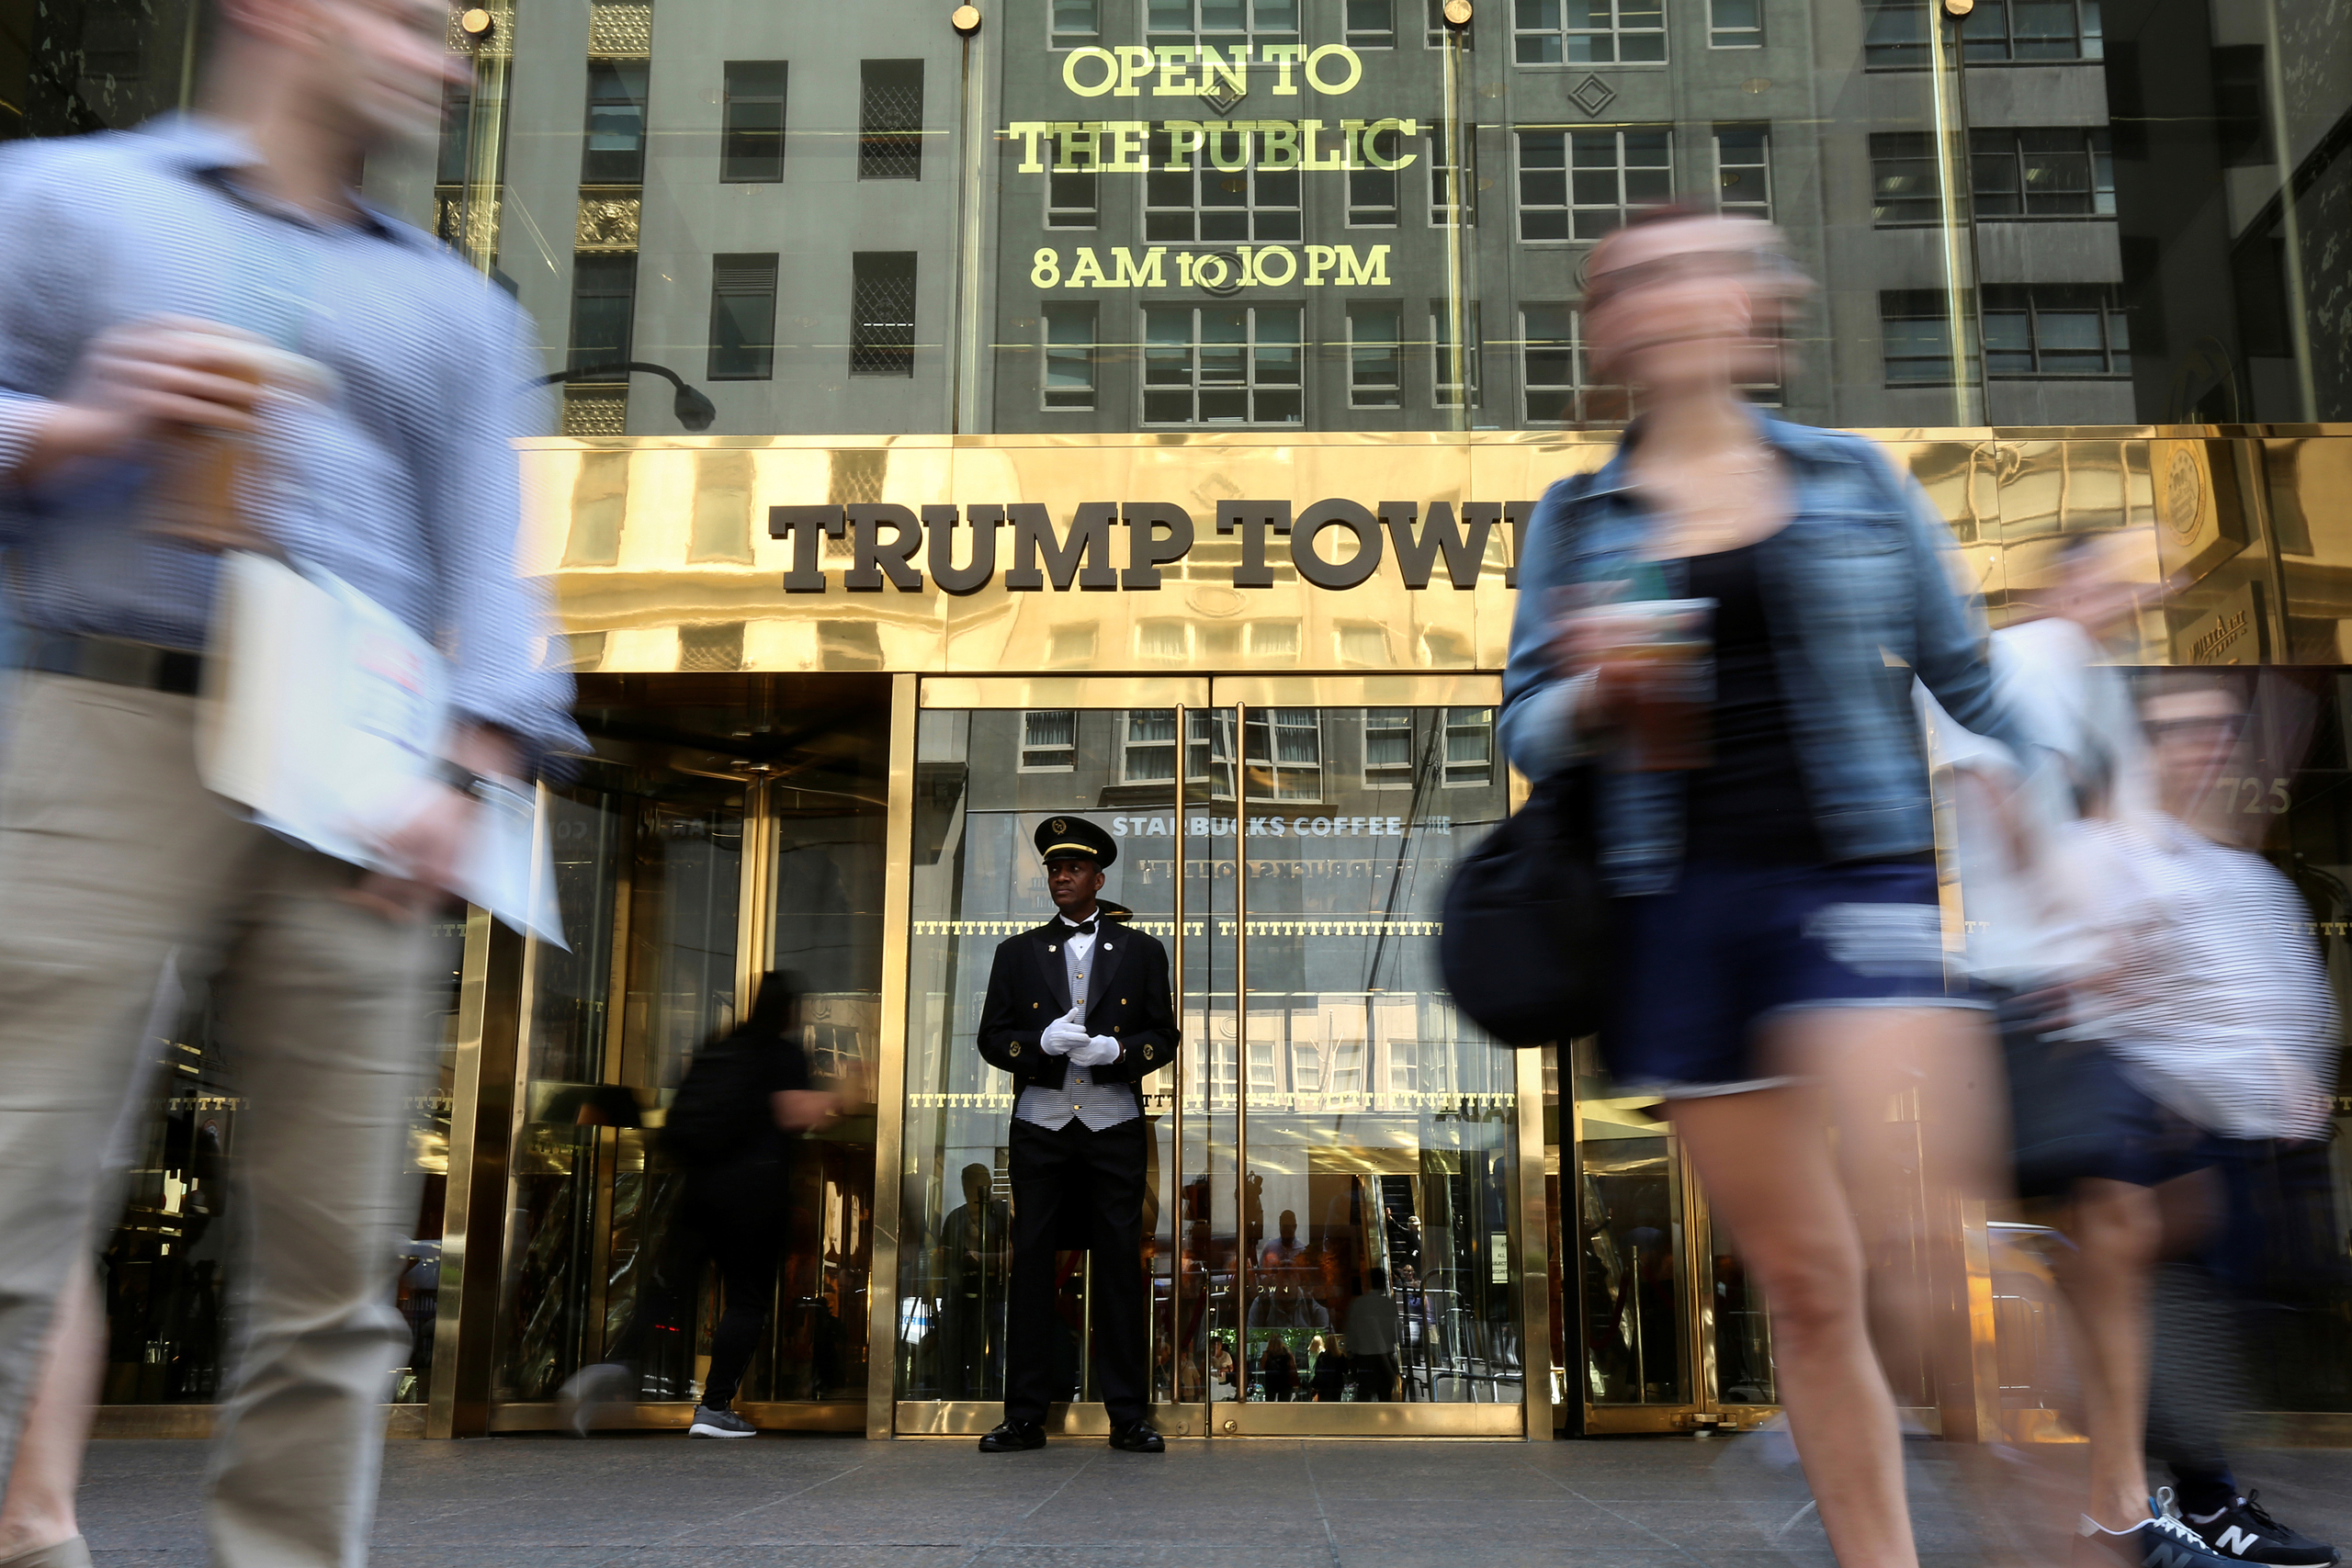 People walk past the Trump Tower in New York on May 23, 2016.